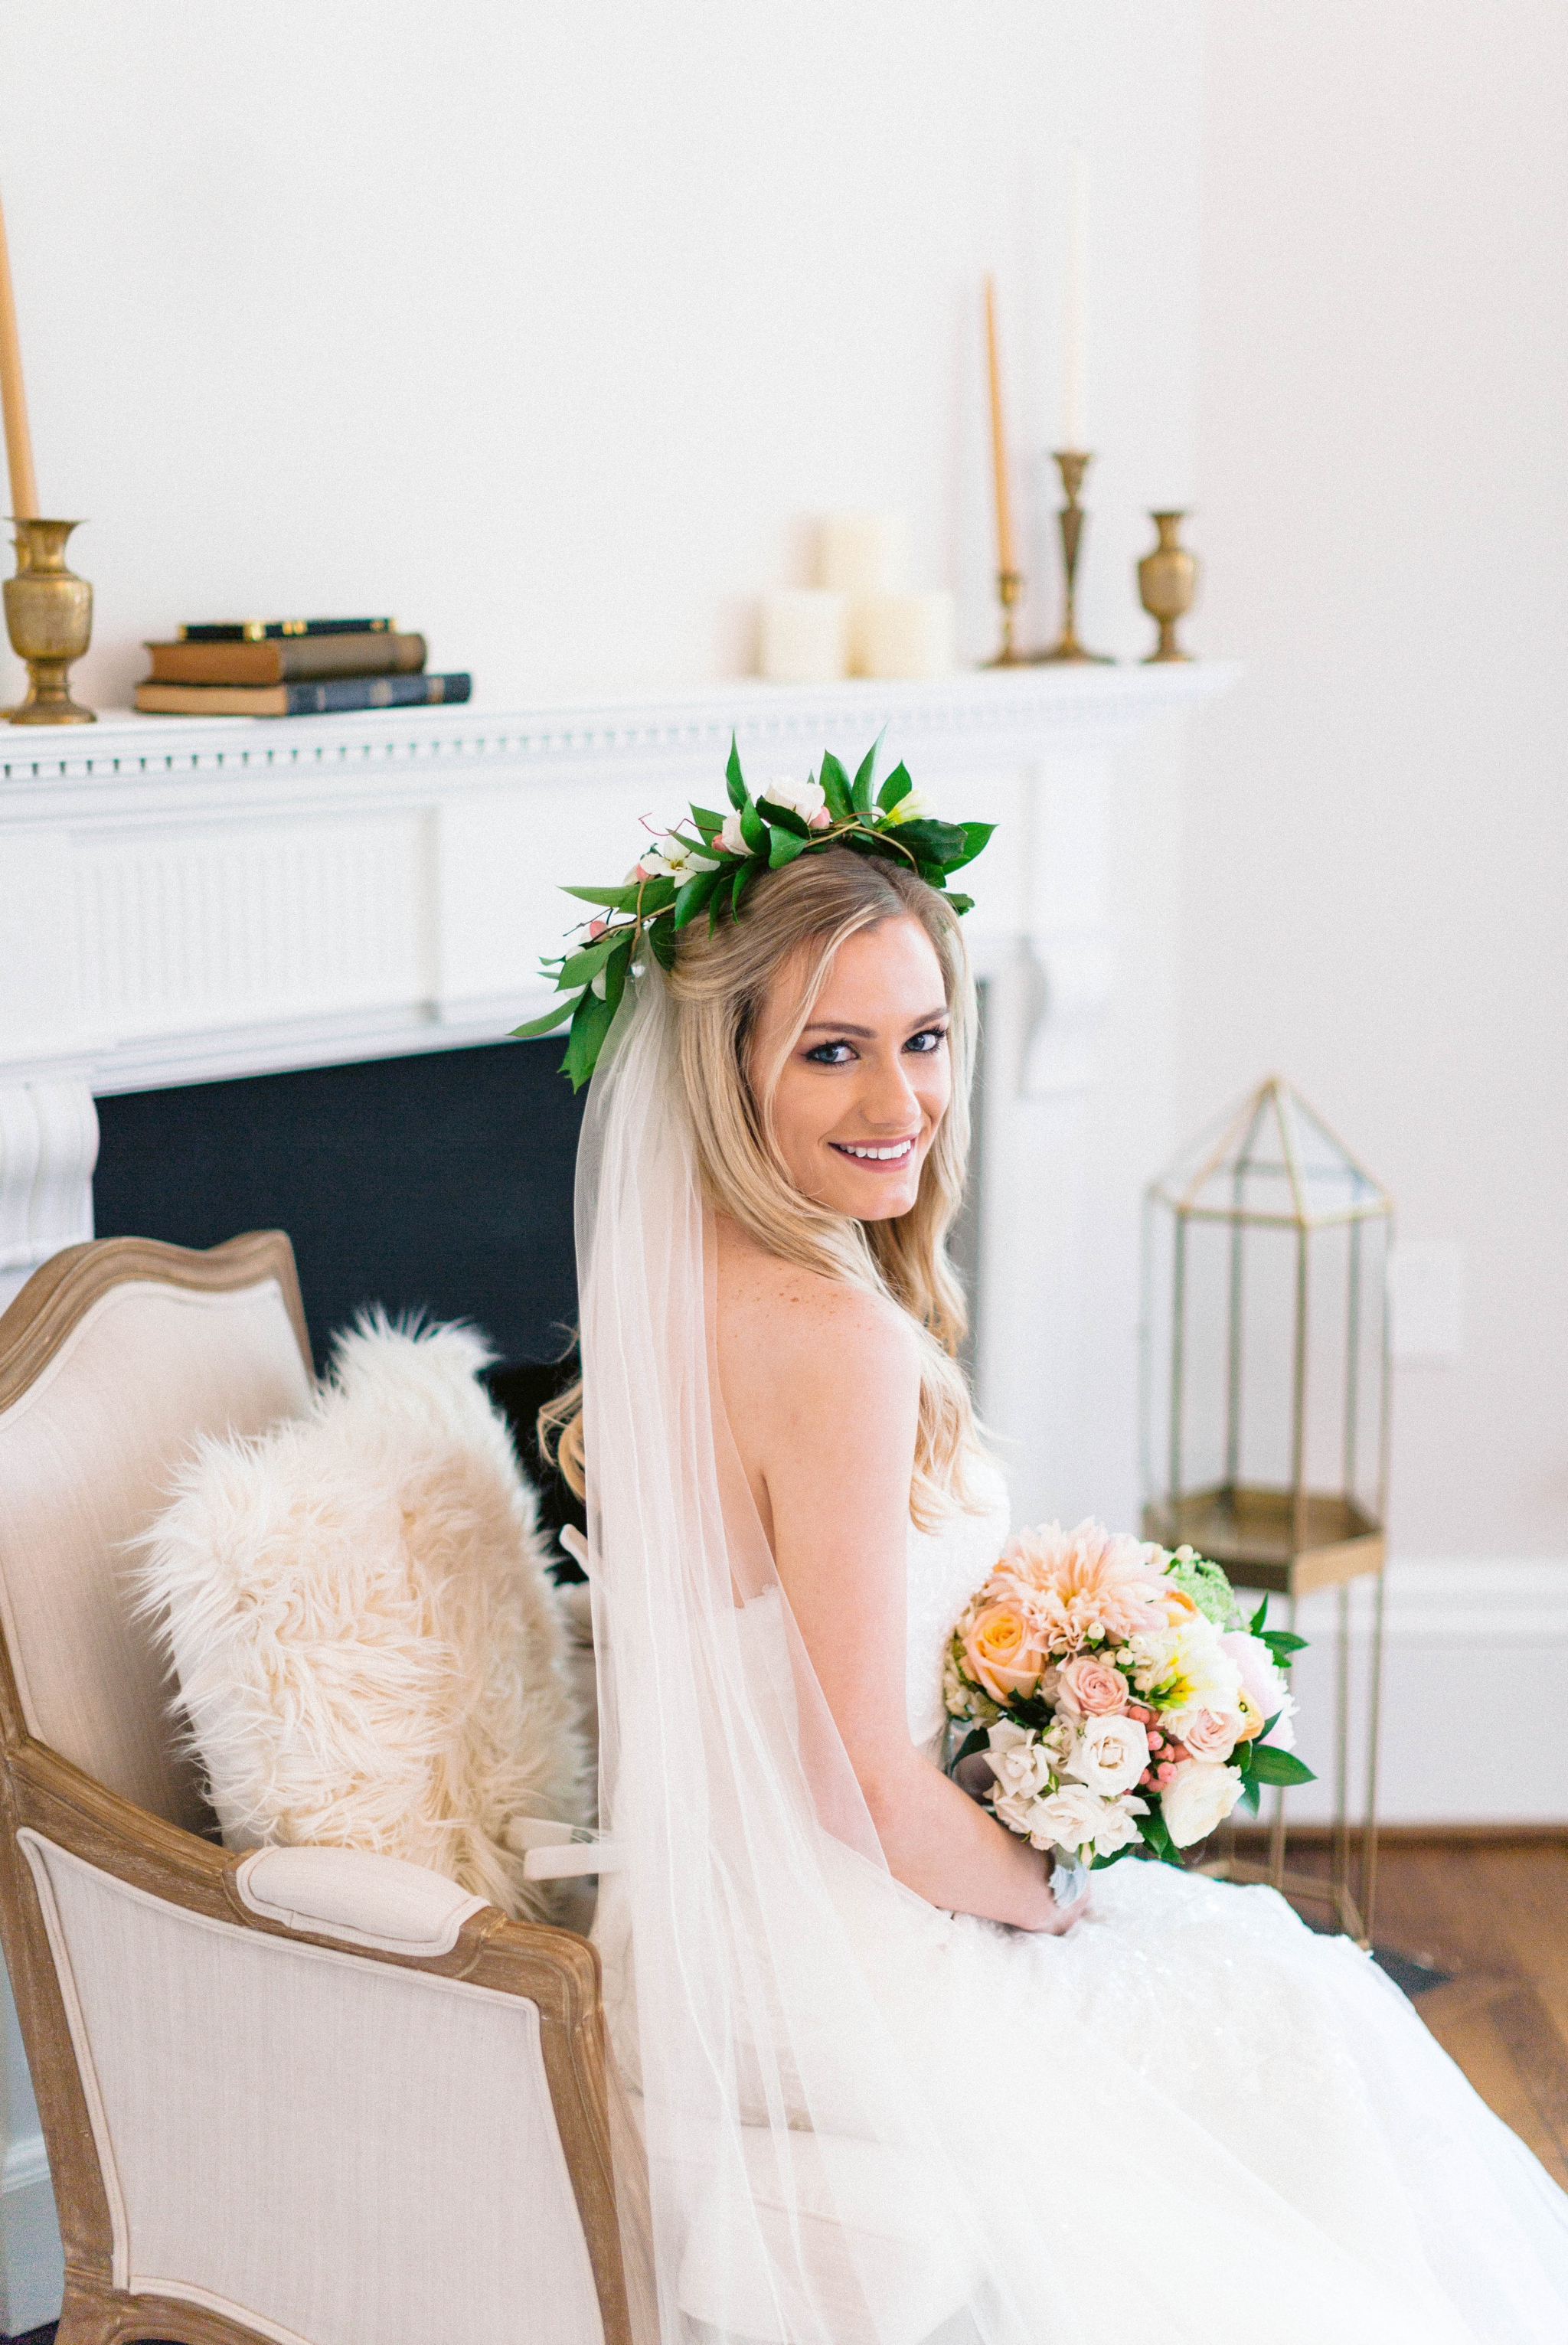 Indoor Bridal Portraits in an all white room at a luxury estate with natural light before the ceremony - Bride is wearing a Hawaiian Flower Crown and a cathedral veil in a Wedding Gown by Stella York sitting on an antique vintage chair in front of a decorated fireplace - Honolulu Oahu Hawaii Wedding Photographer - Johanna Dye Photography